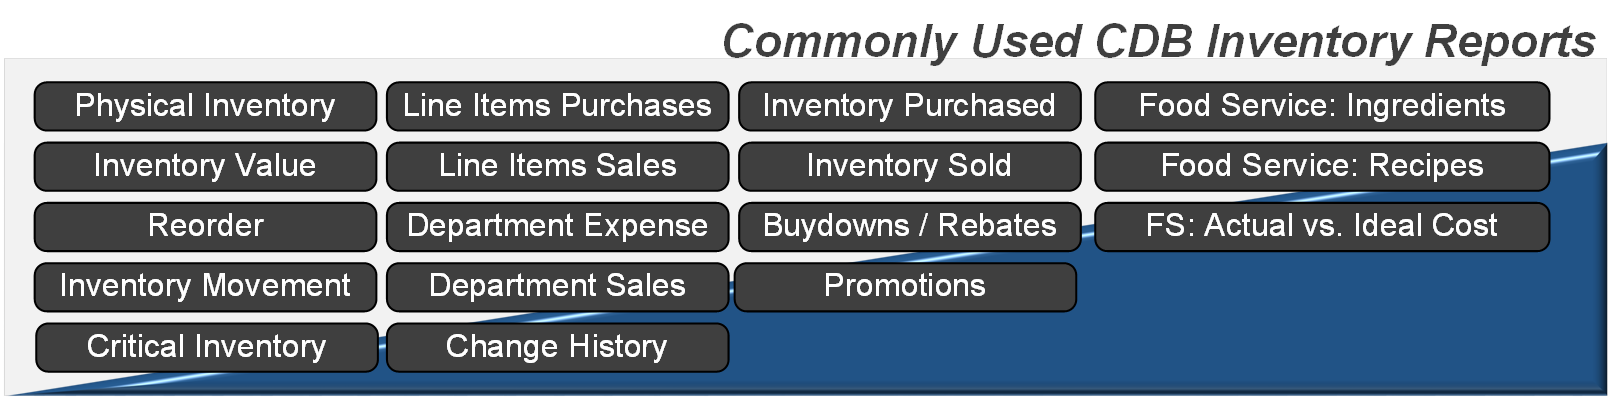 CDB Inventory Management